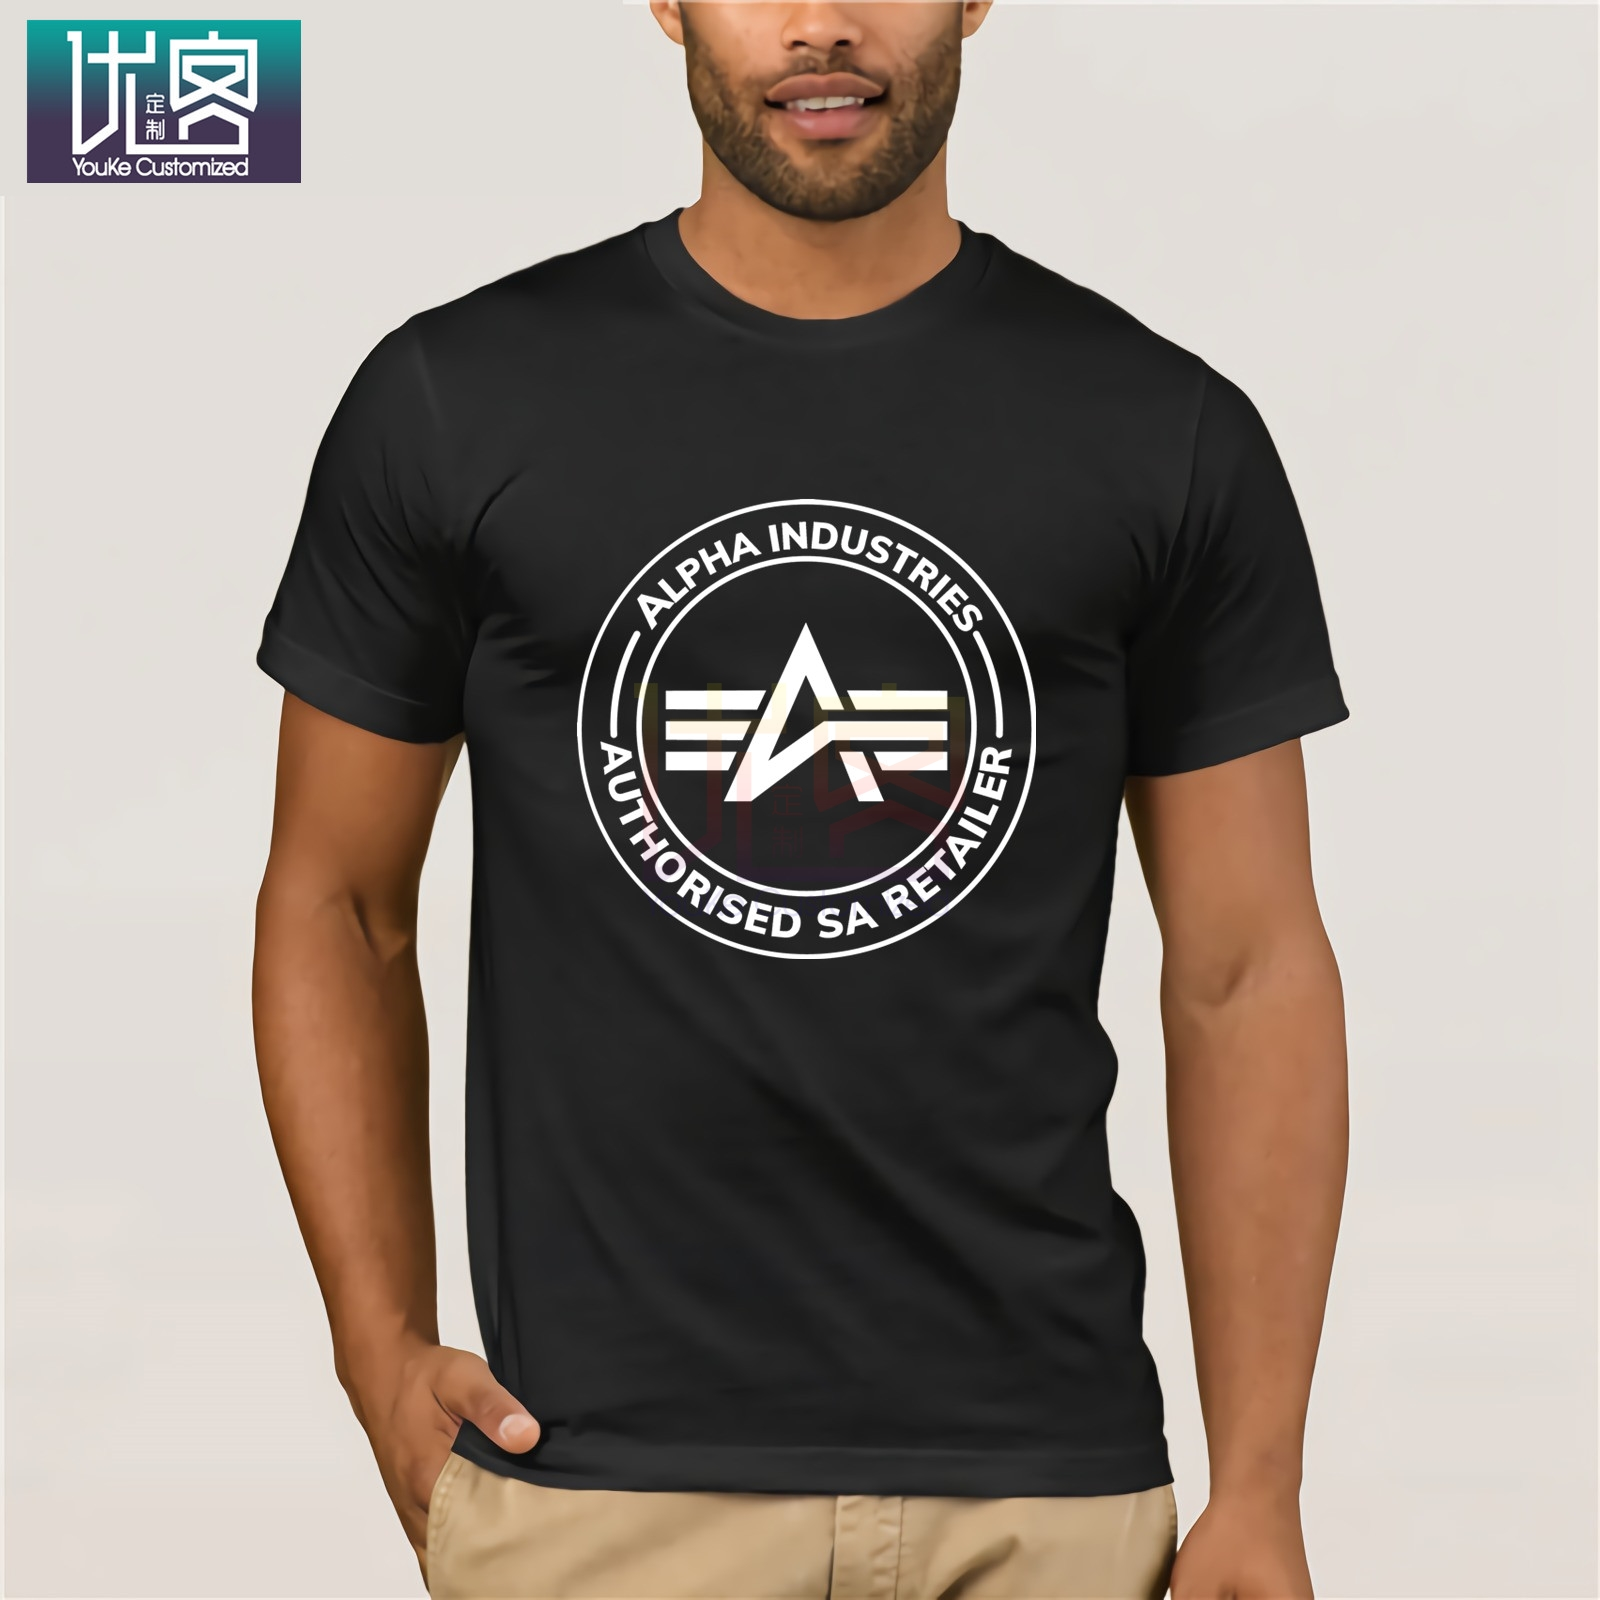 Mens Fashion 2019 Alpha Industries T-shirt Cotton Short Sleeves Tee Shirt Casual  Tee Shirt Summer Hipste Tees Tops